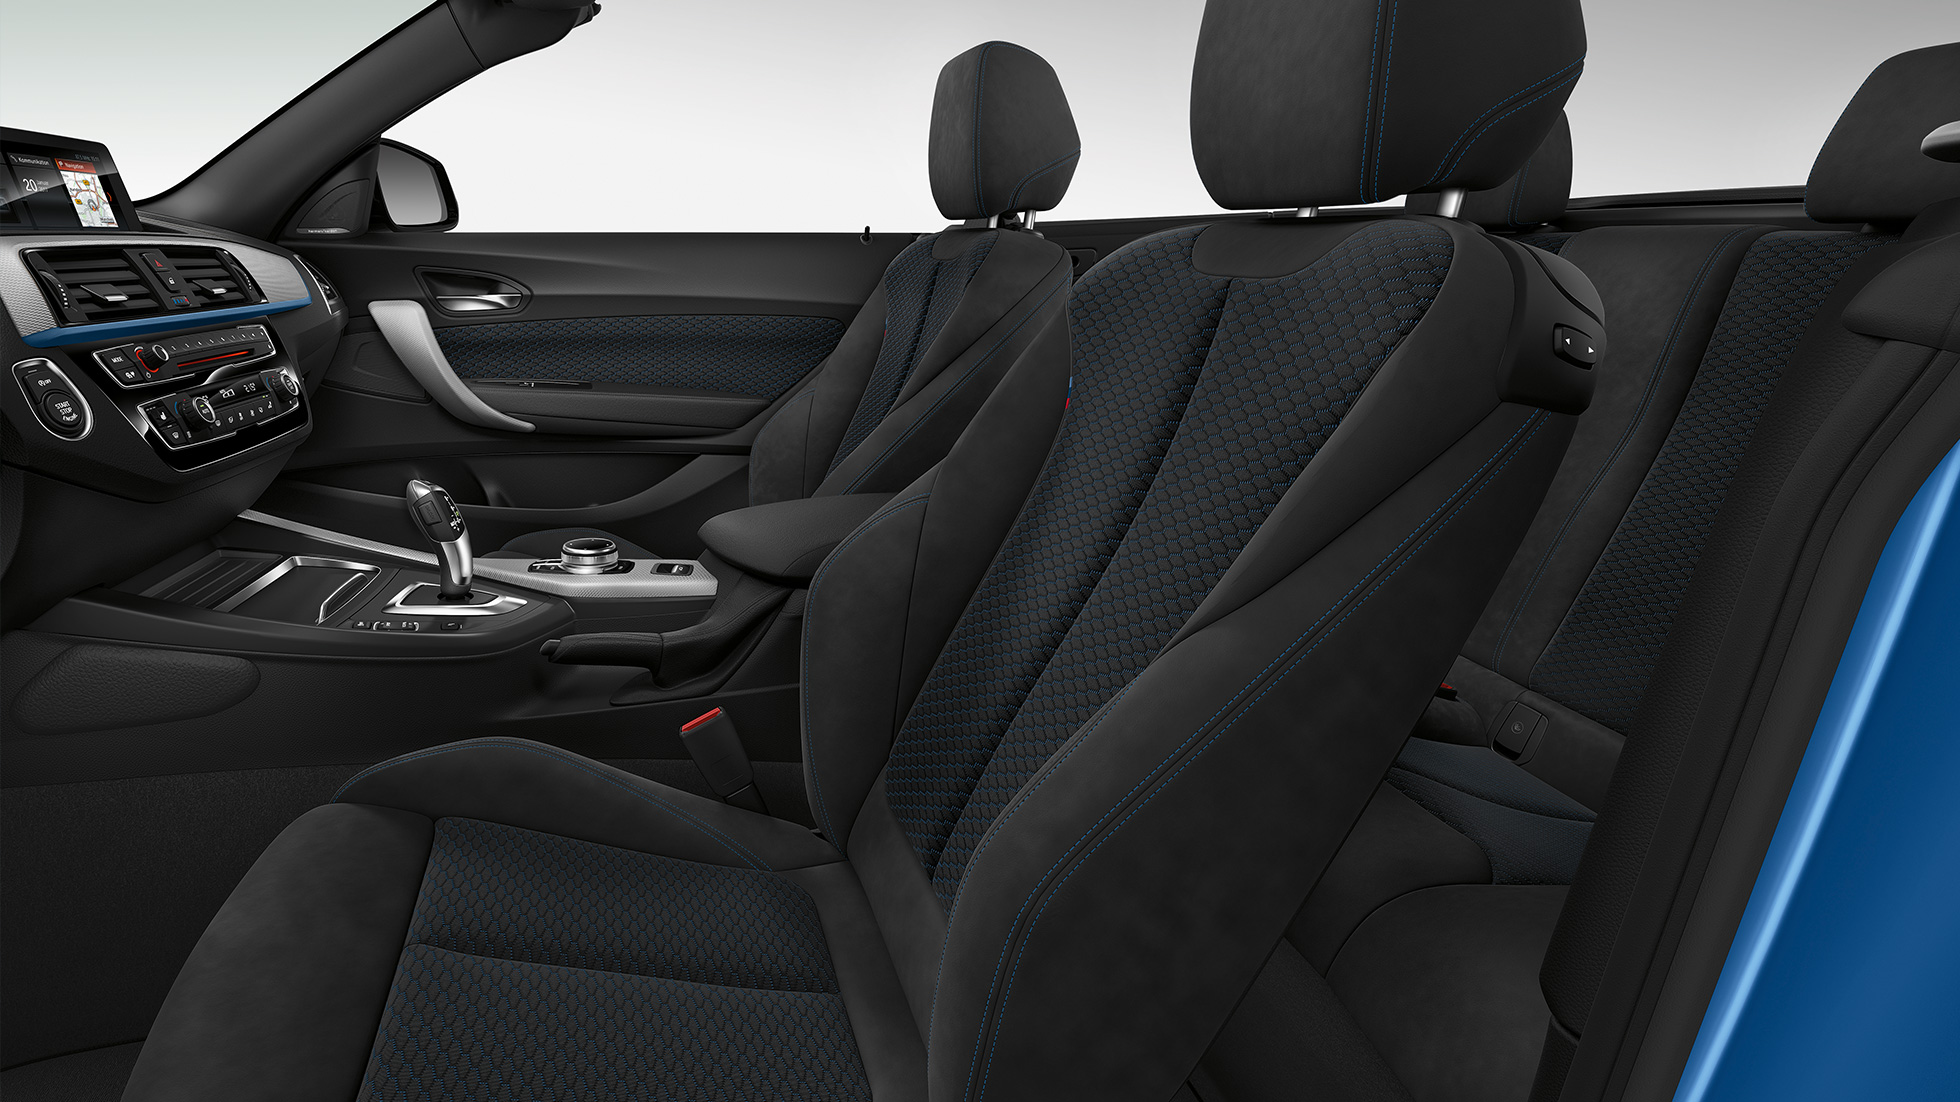 BMW 2 Serie Cabrio, Model M Sport interieur